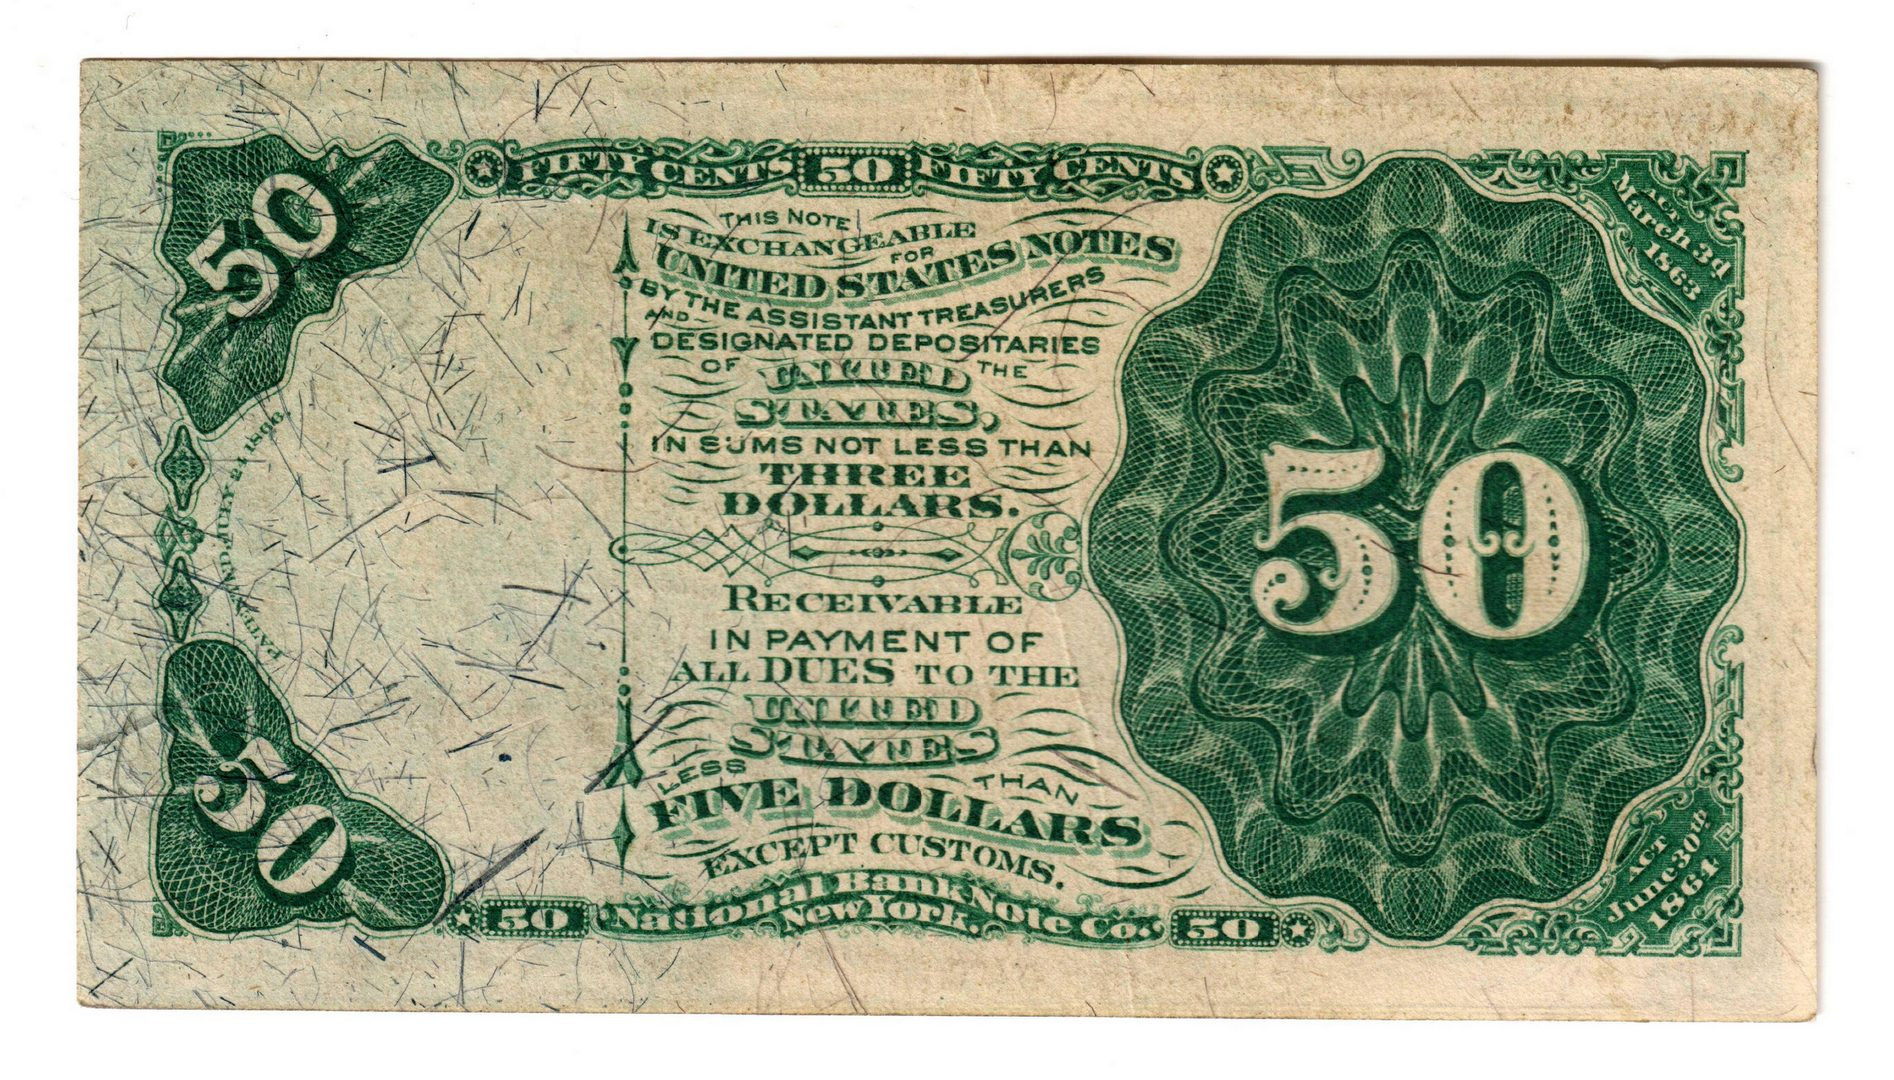 Lot 6: Pair Of 50 Cent U.S. Fractional Banknotes